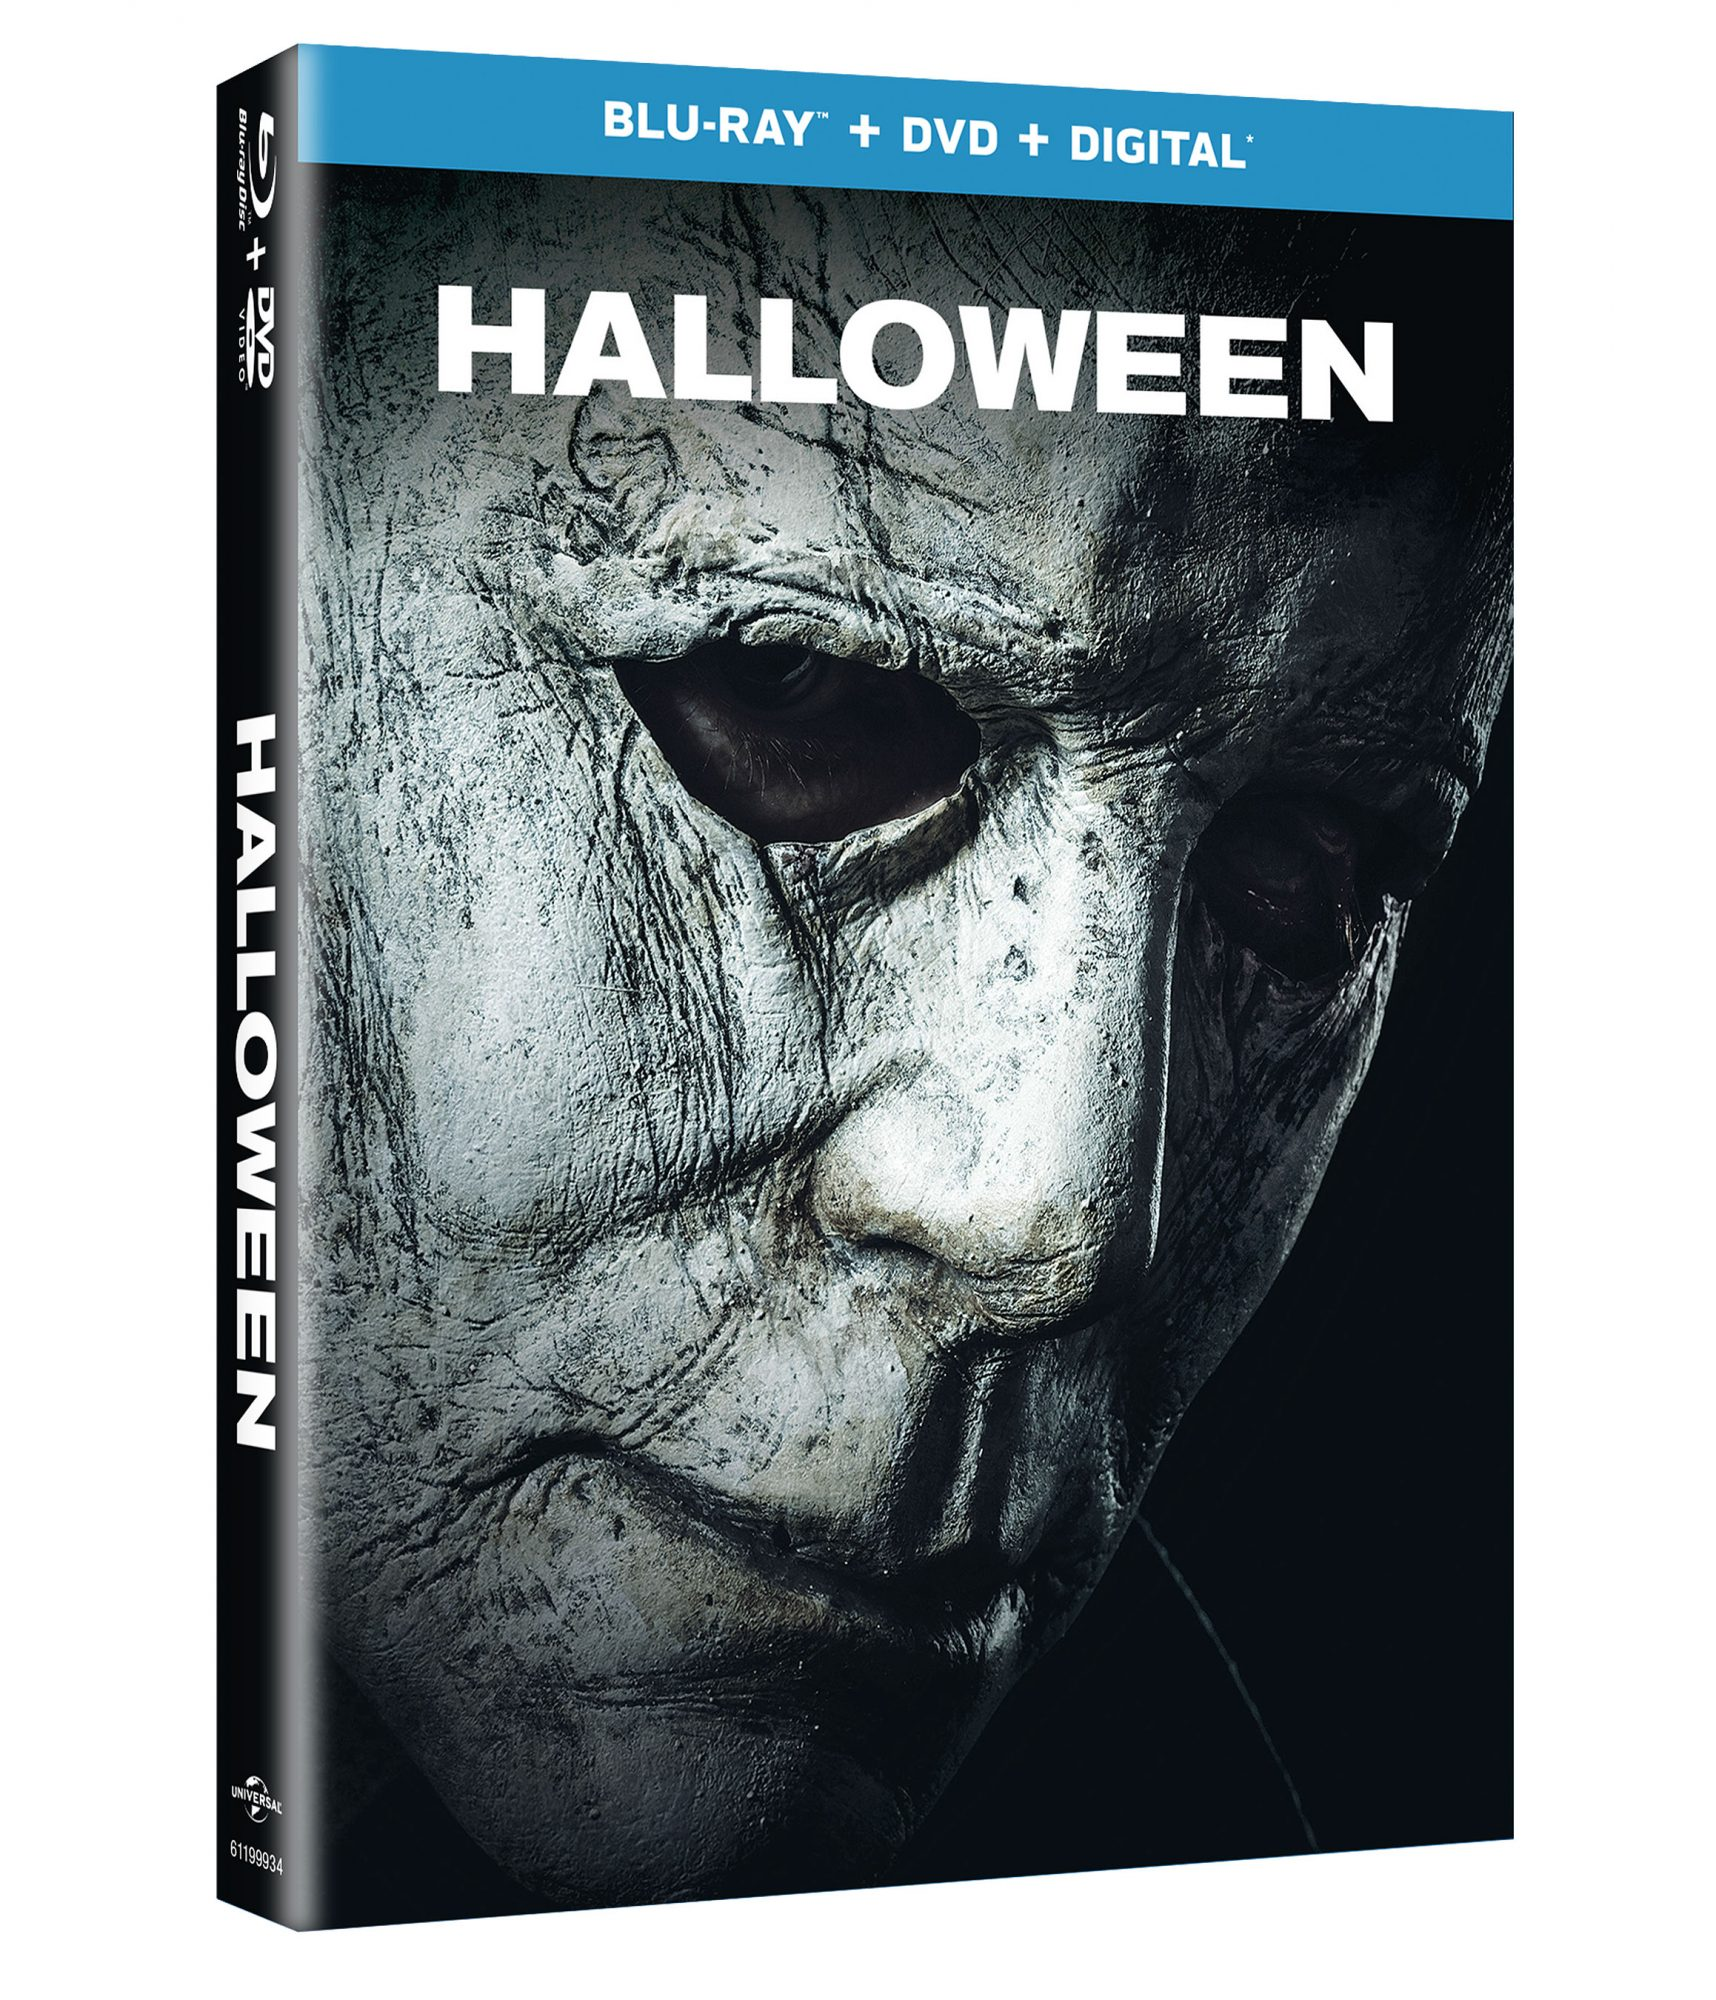 Watch an exclusive deleted scene from 'Halloween' on Blu Ray